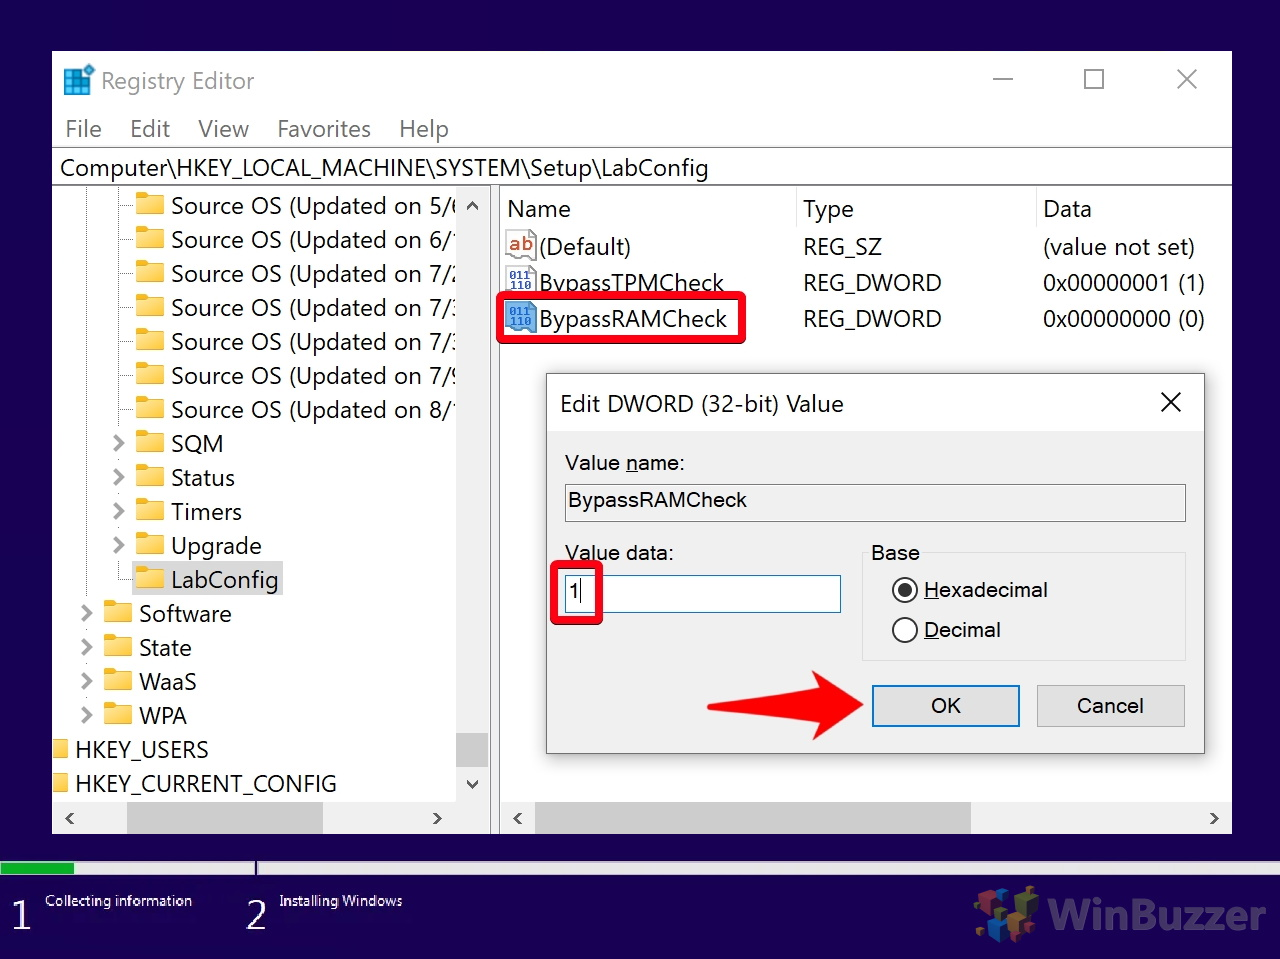 Windows 10 - Windows Setup - Can´t run Windows 10 - Command Prompt - Registry Editor - Navigate to - Setup - LabConfig - New DWORD BypassRAMCheck - 1 Value